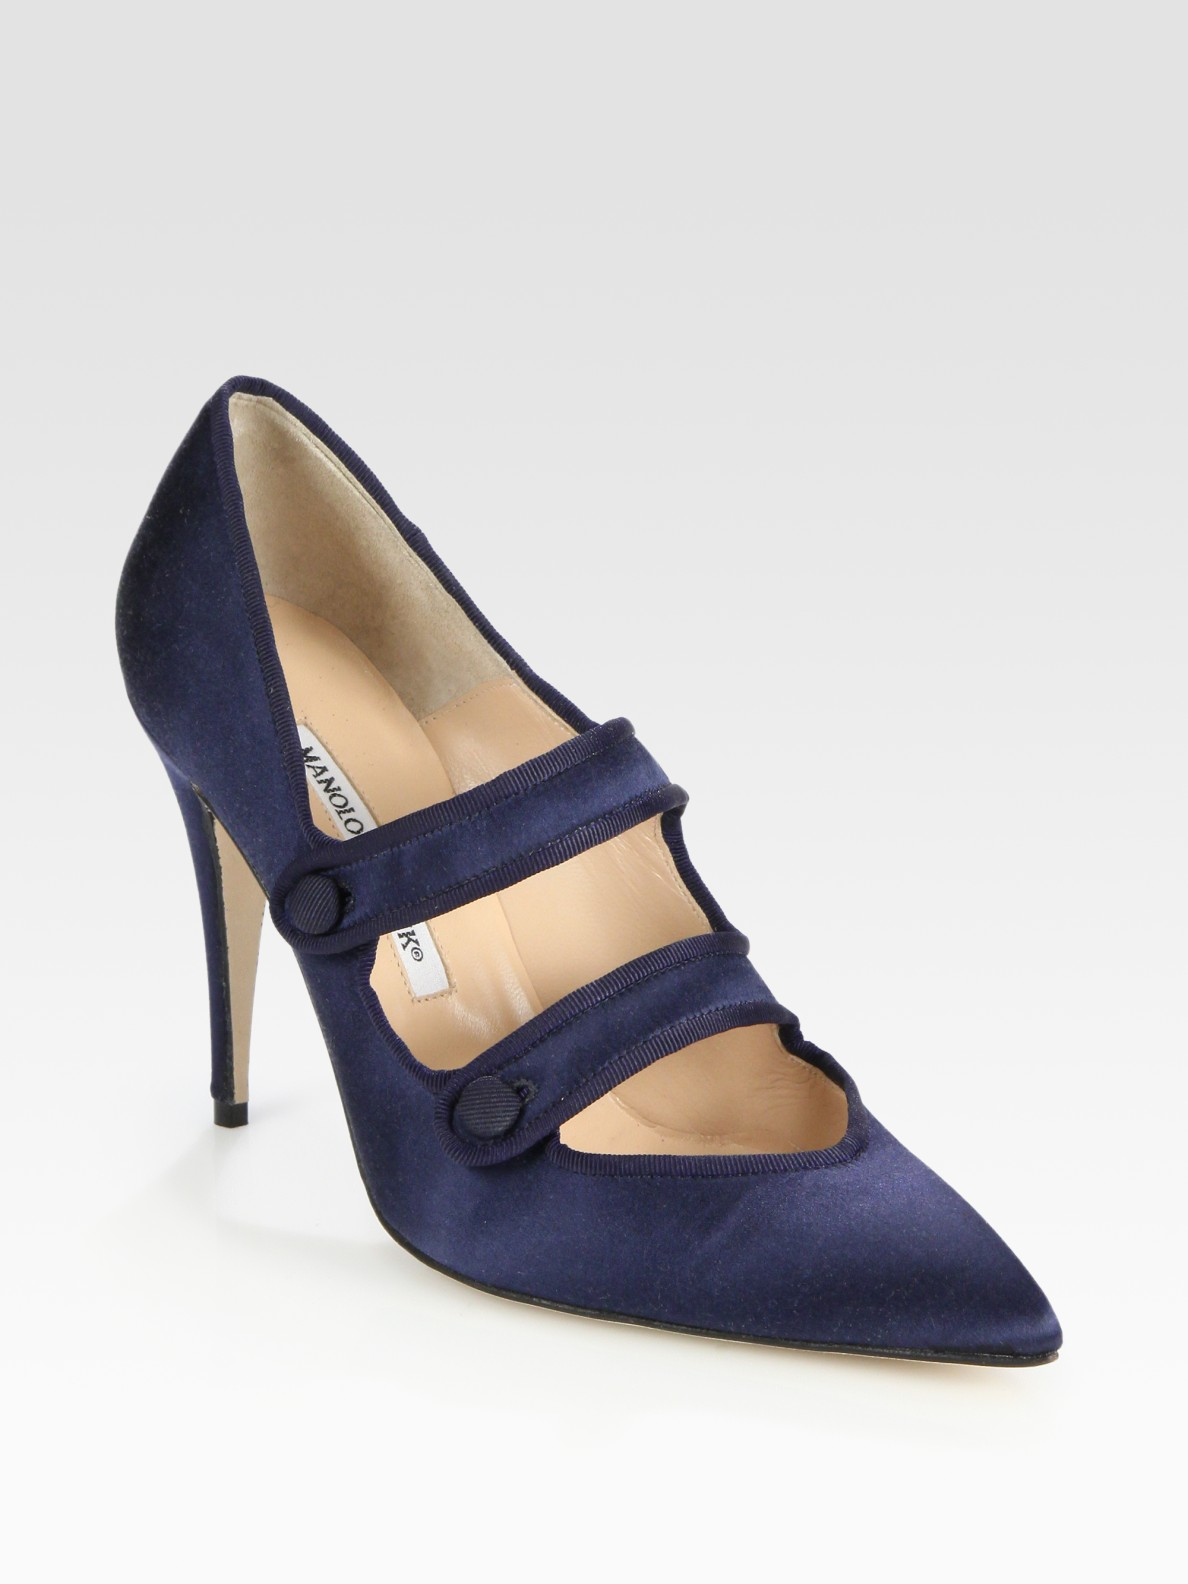 Lyst manolo blahnik satin grosgrain mary jane pumps in blue for Who is manolo blahnik